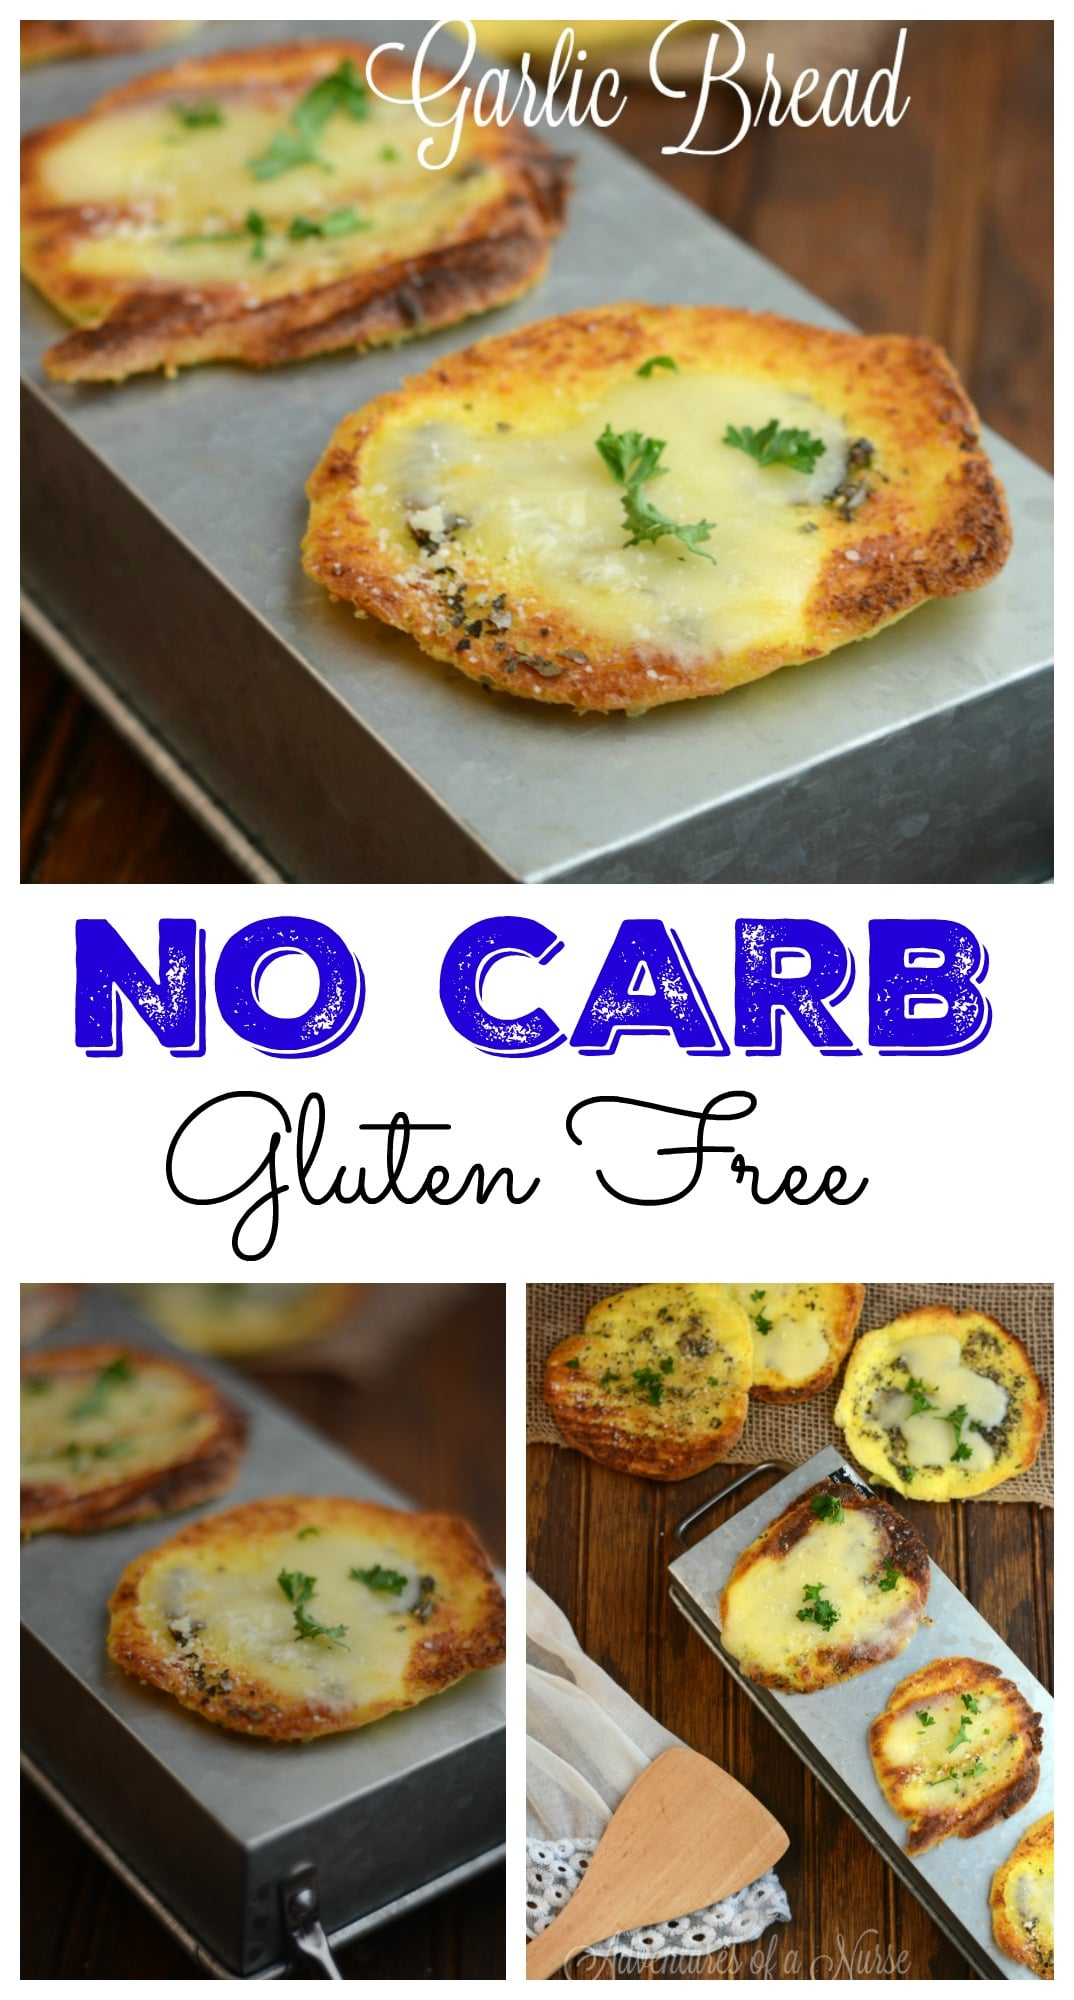 NO Carb Garlic Cloud Bread #GlutenFree #CarbFree #Healthy